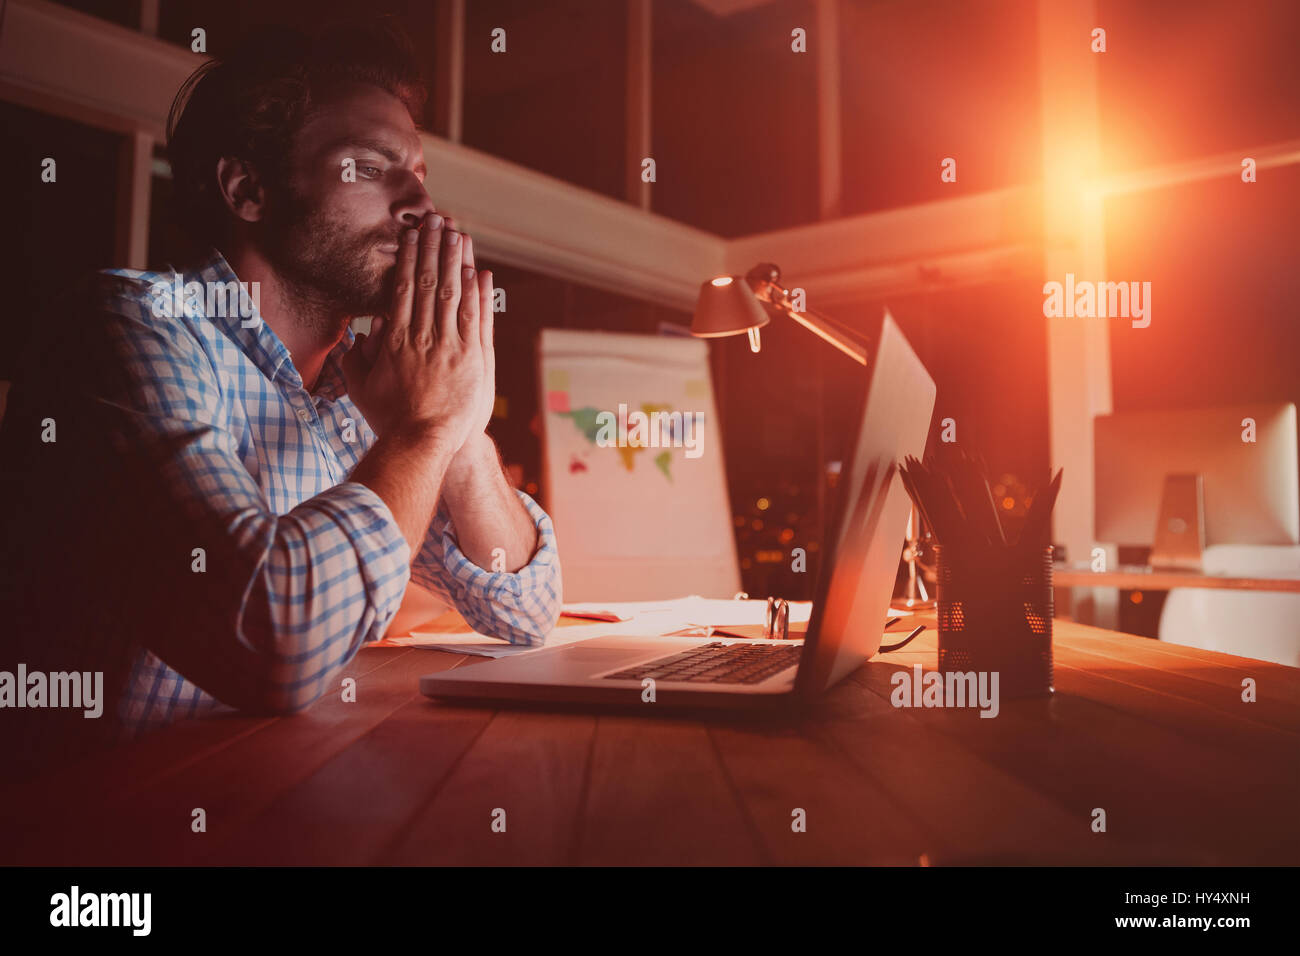 Overworked businessman working at night in office - Stock Image